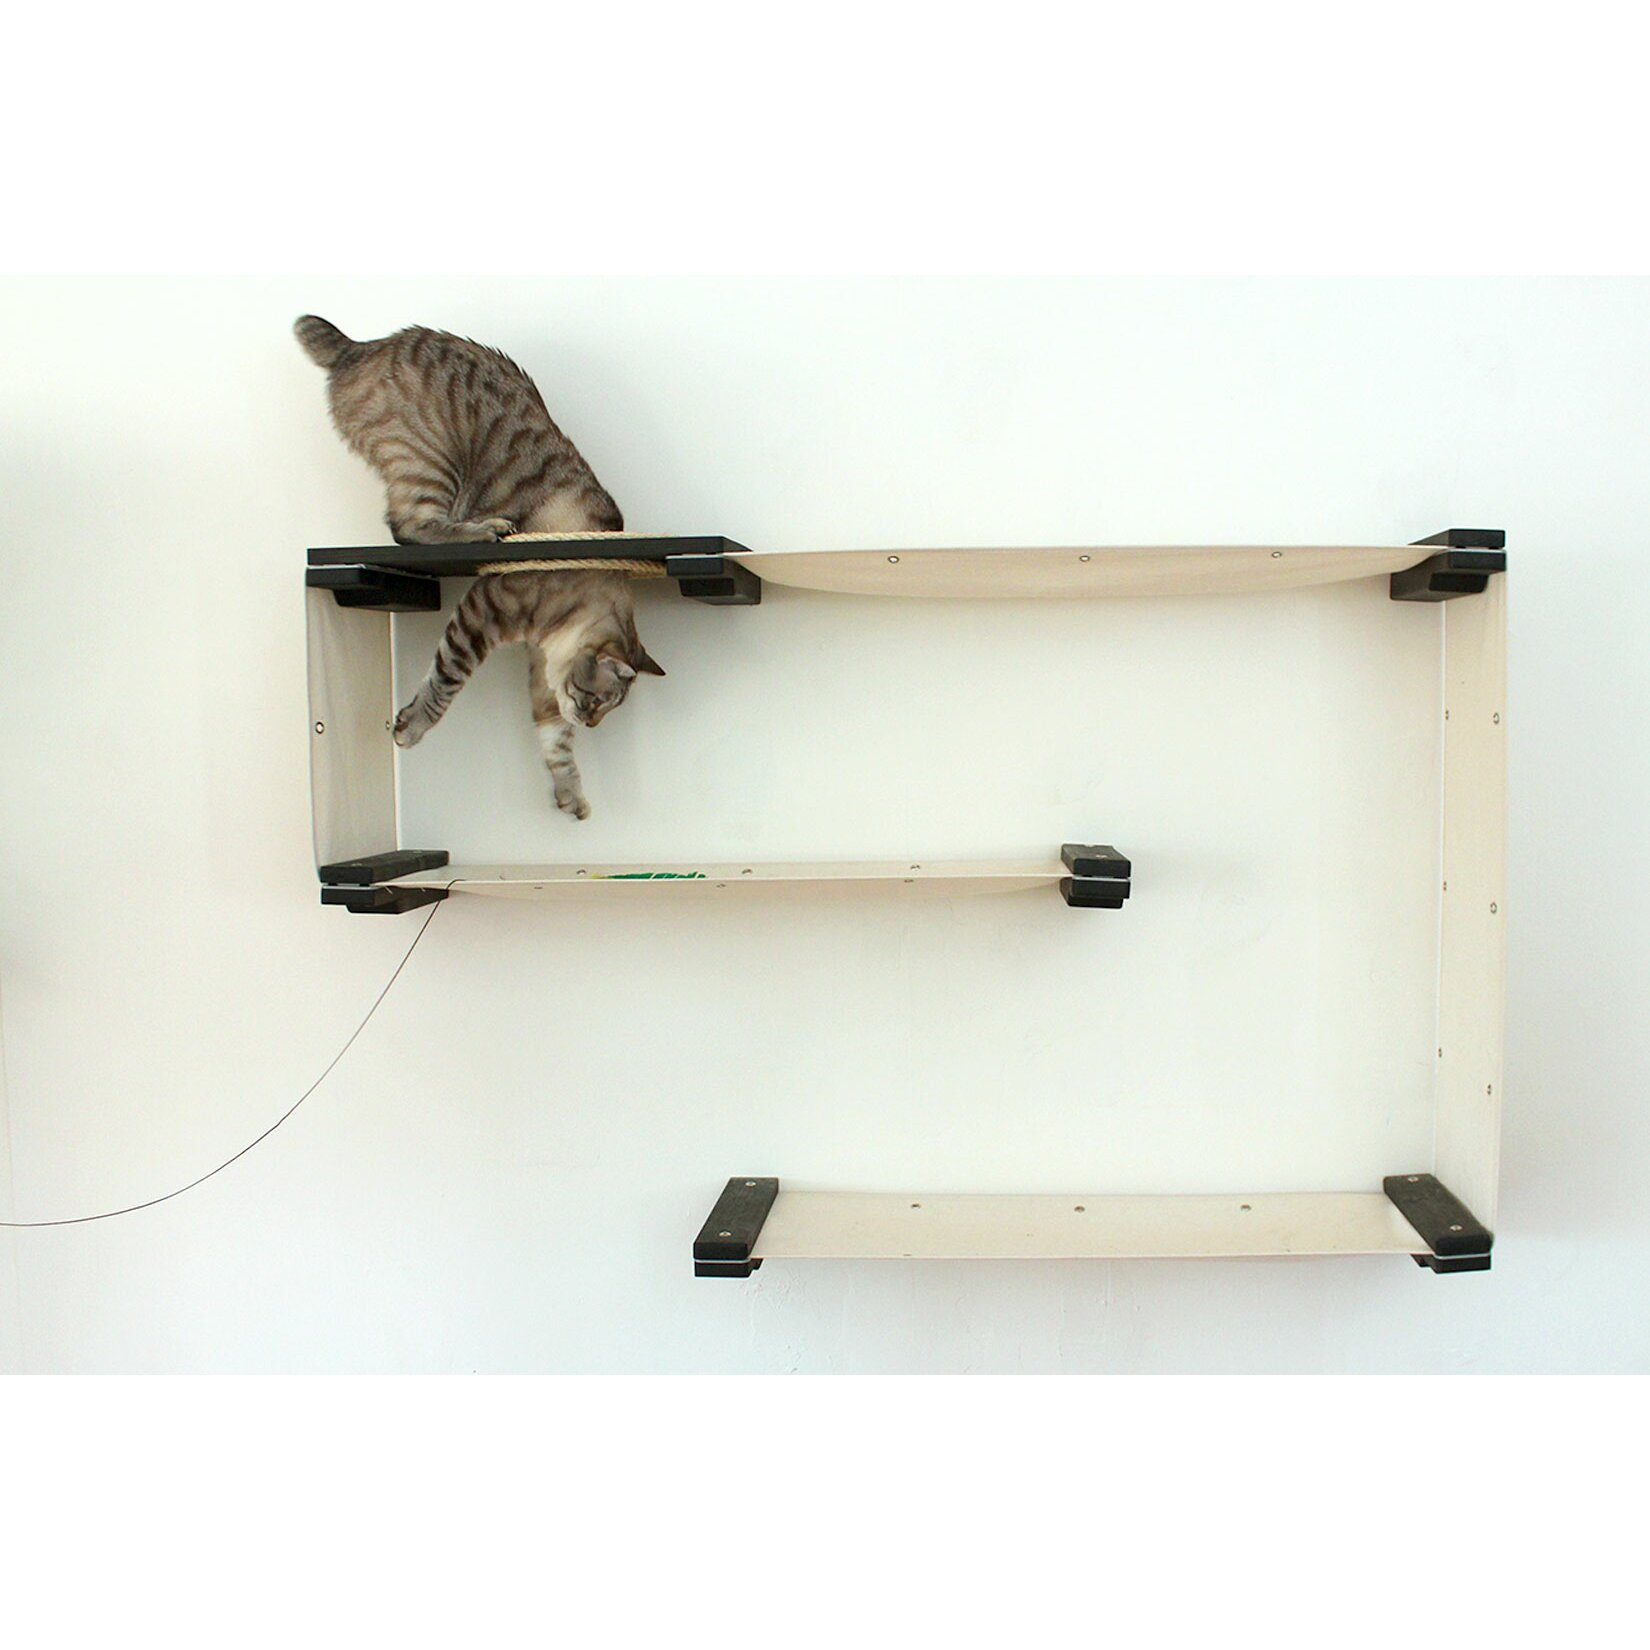 Catastrophicreations 31 mod handcrafted wall mounted cat tree - Wall mounted cat climber ...